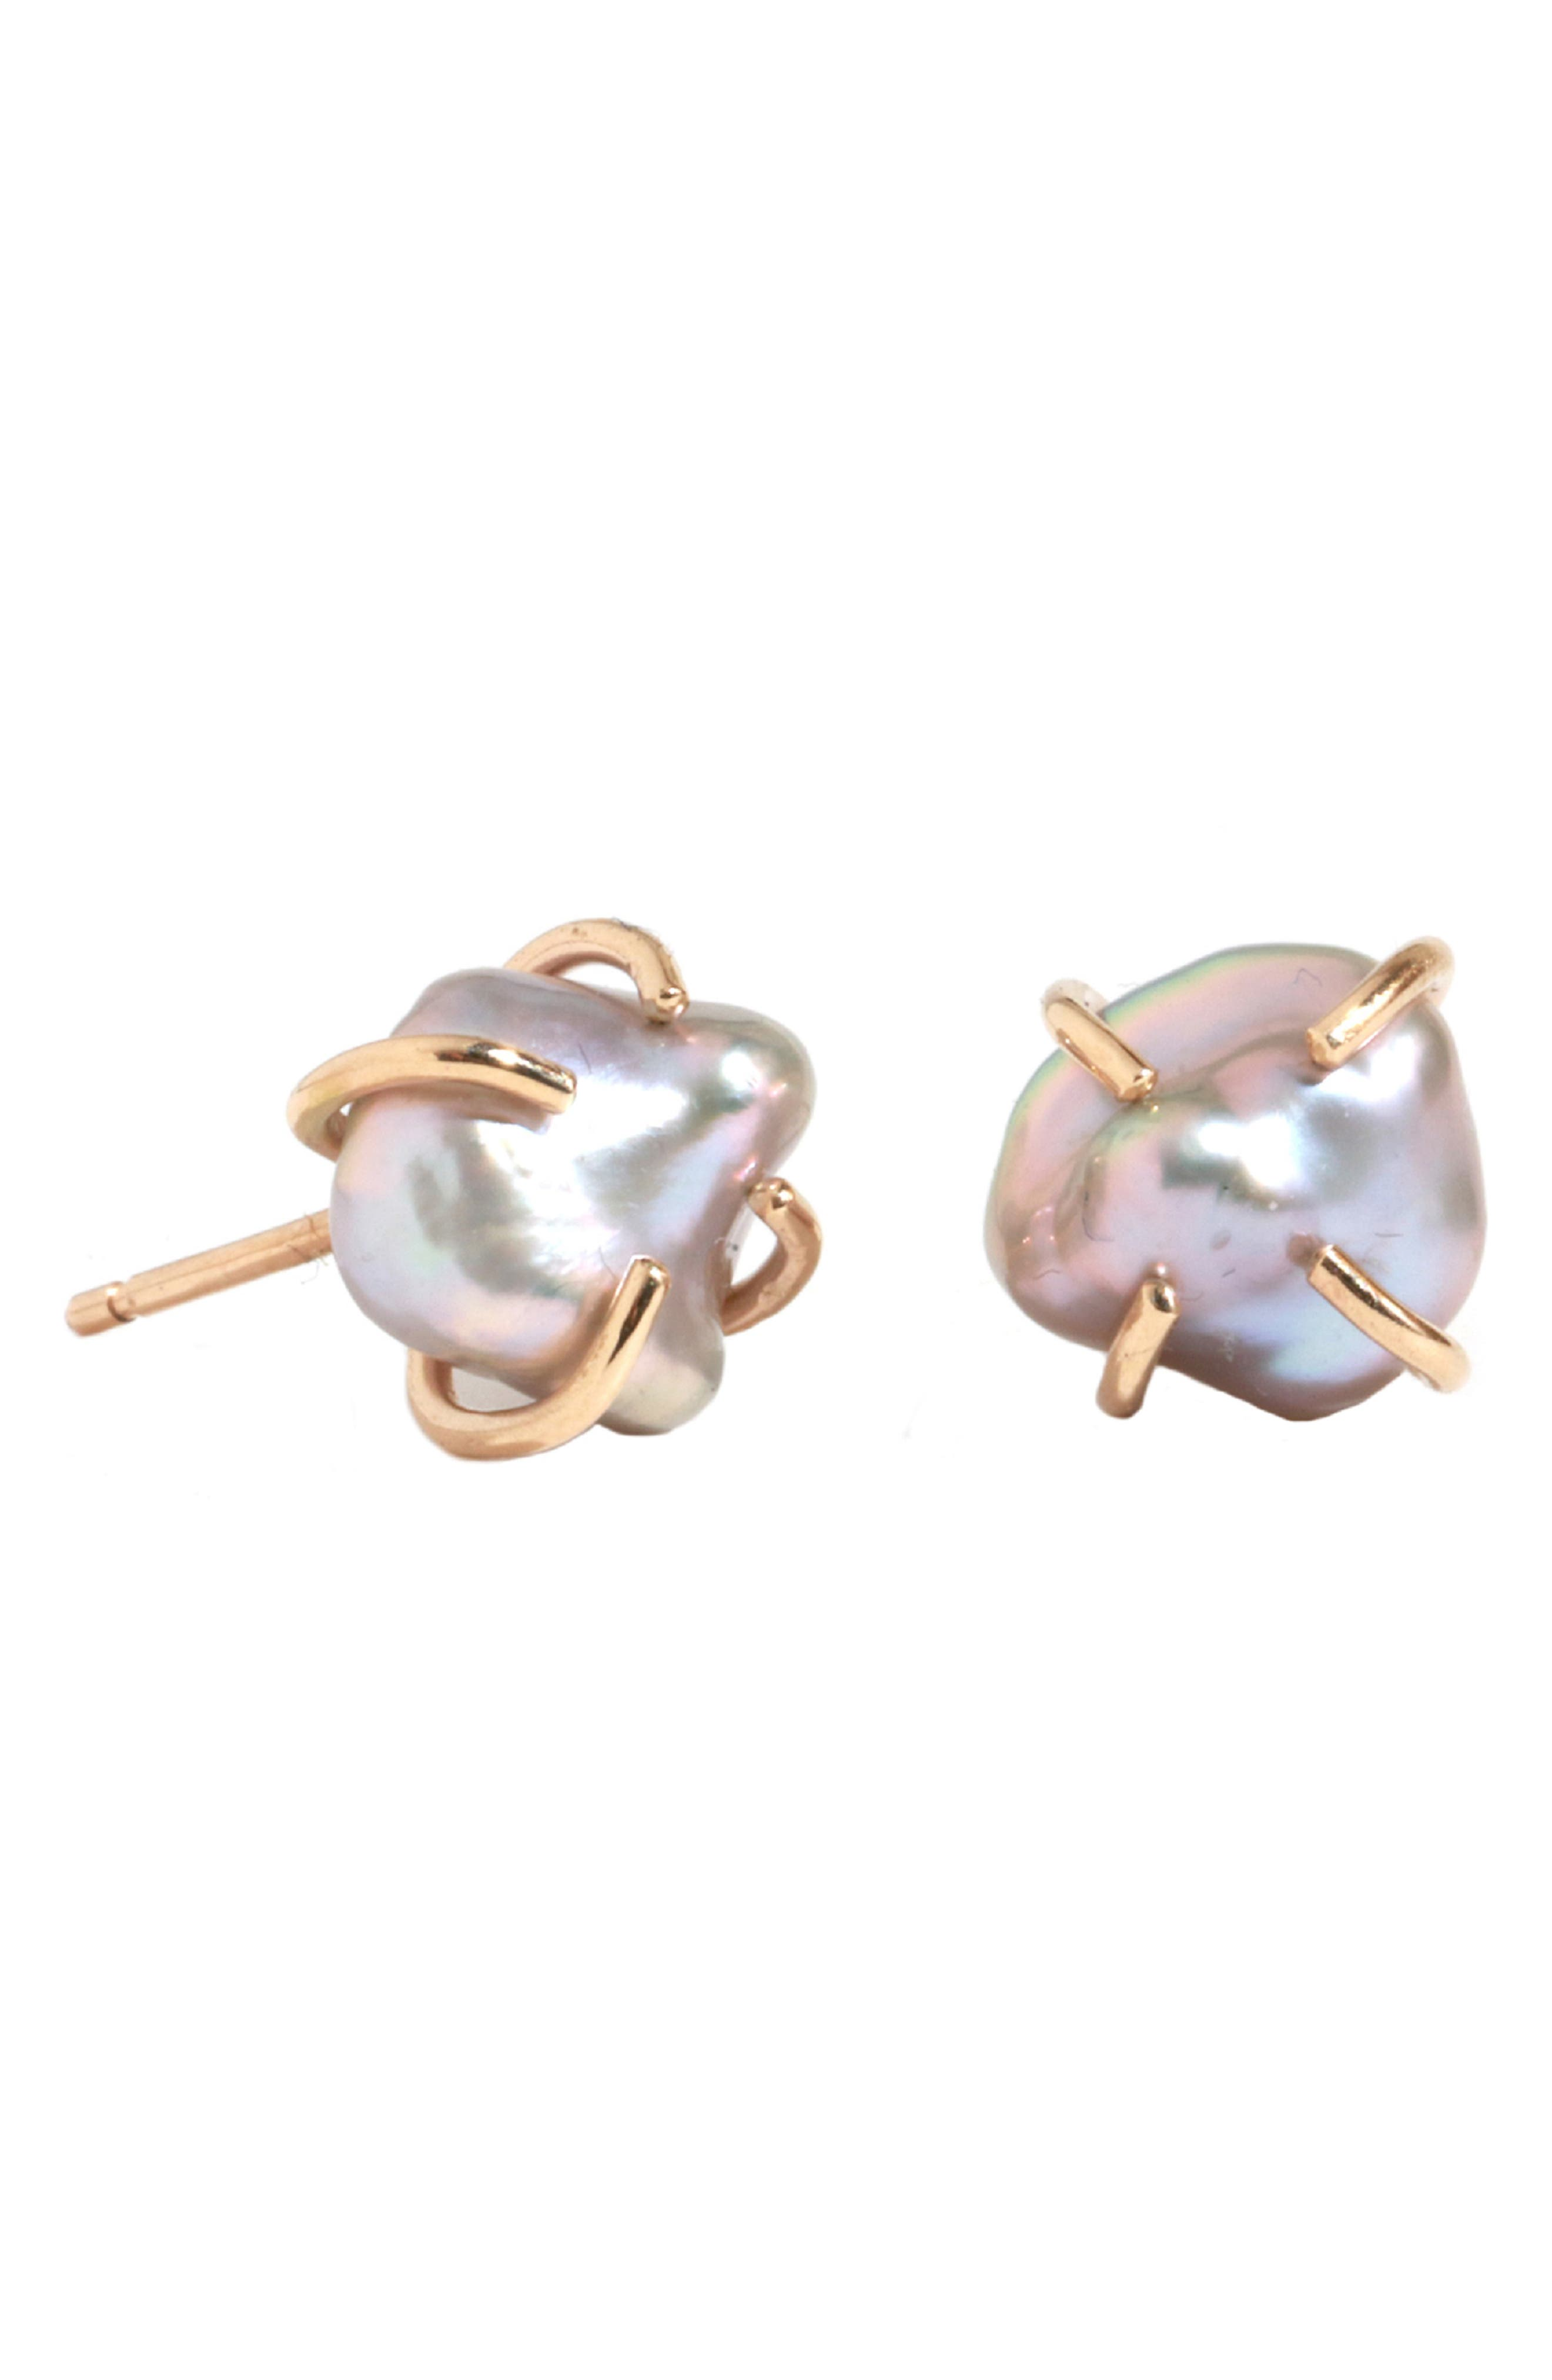 MELISSA JOY MANNING Keshi Pearl Stud Earrings in Pearl/ Yellow Gold